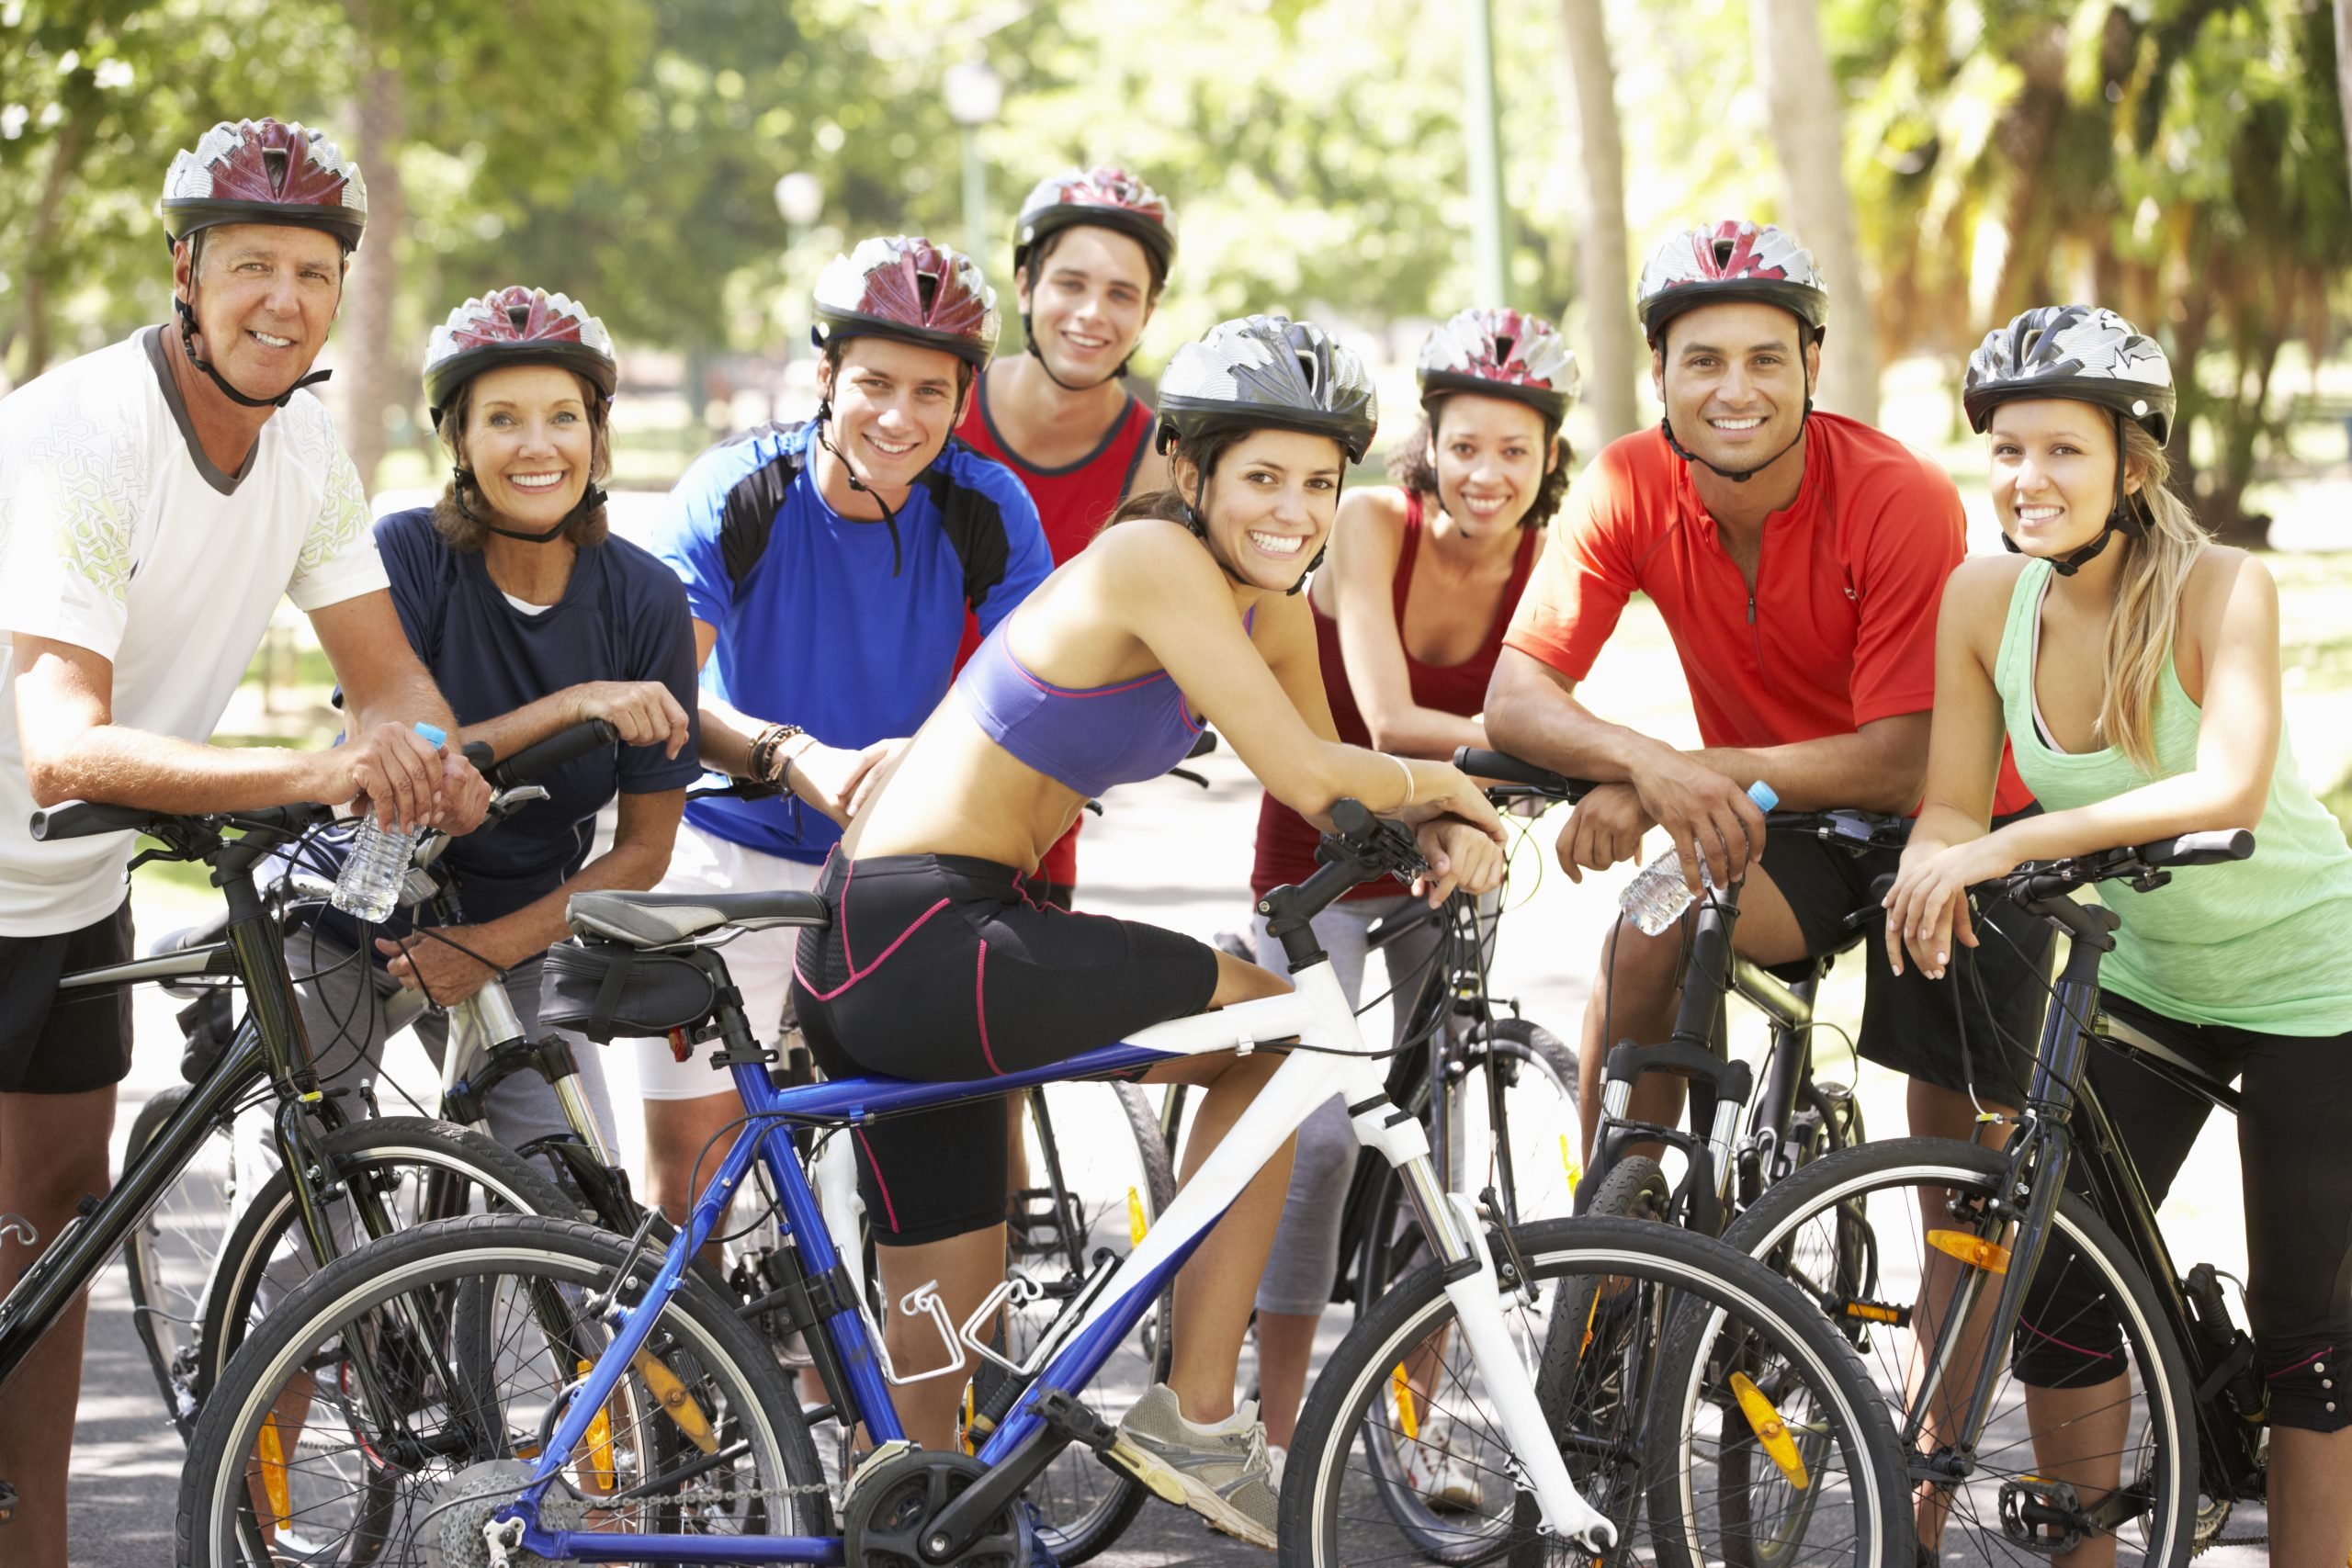 Lose weight cycling and have a blast doing it! Check out how here at jenbaucom.com #cycling #weightloss #loseweightcycling #cyclingtips